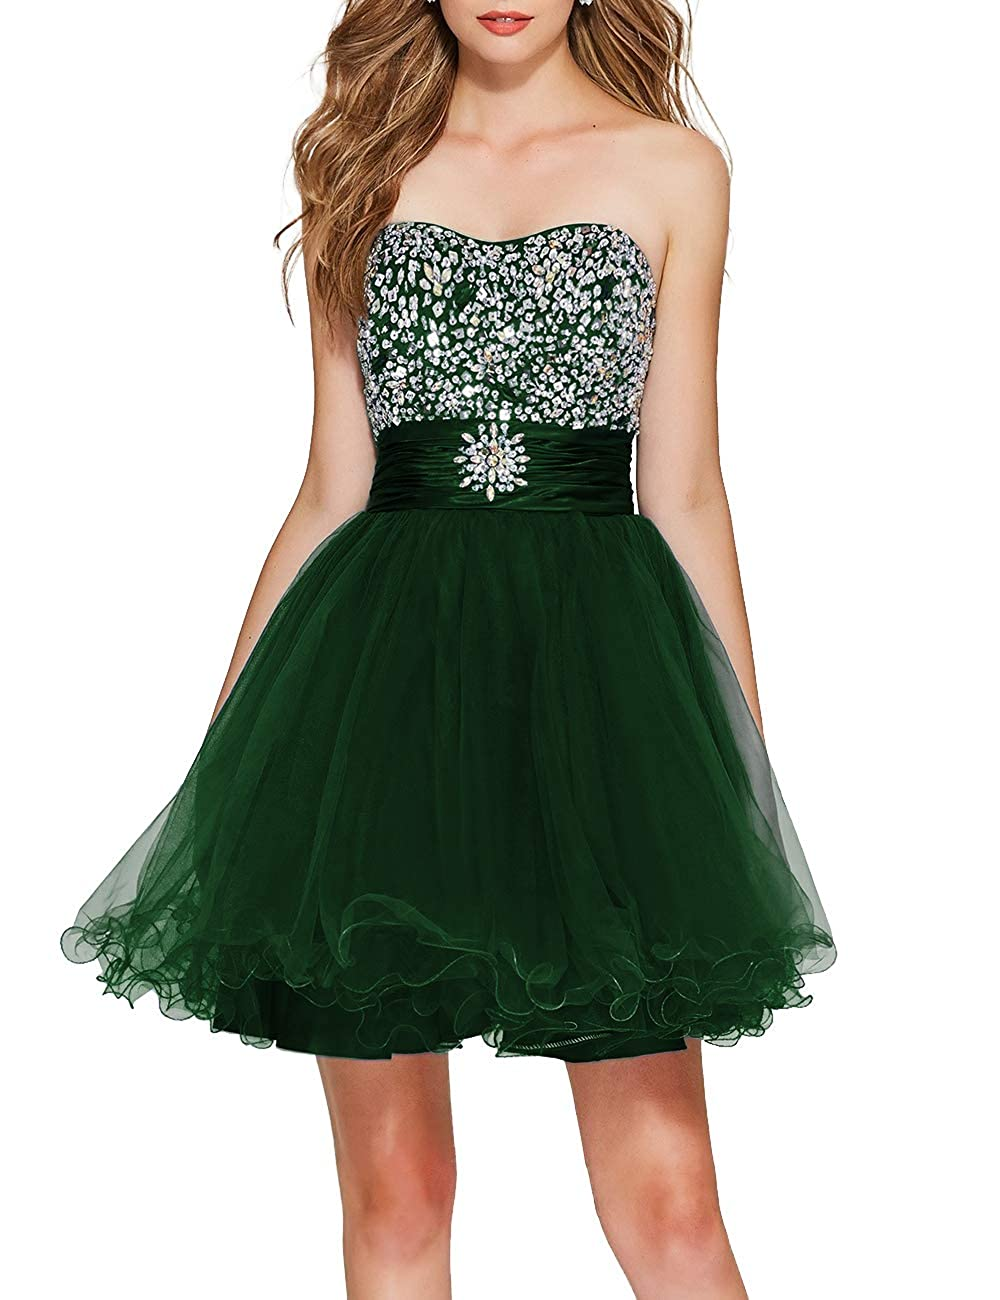 Dark Green Uther Girls Sweetheart Bridesmaid Dresses Beaded Homecoming Dress Short Prom Gown